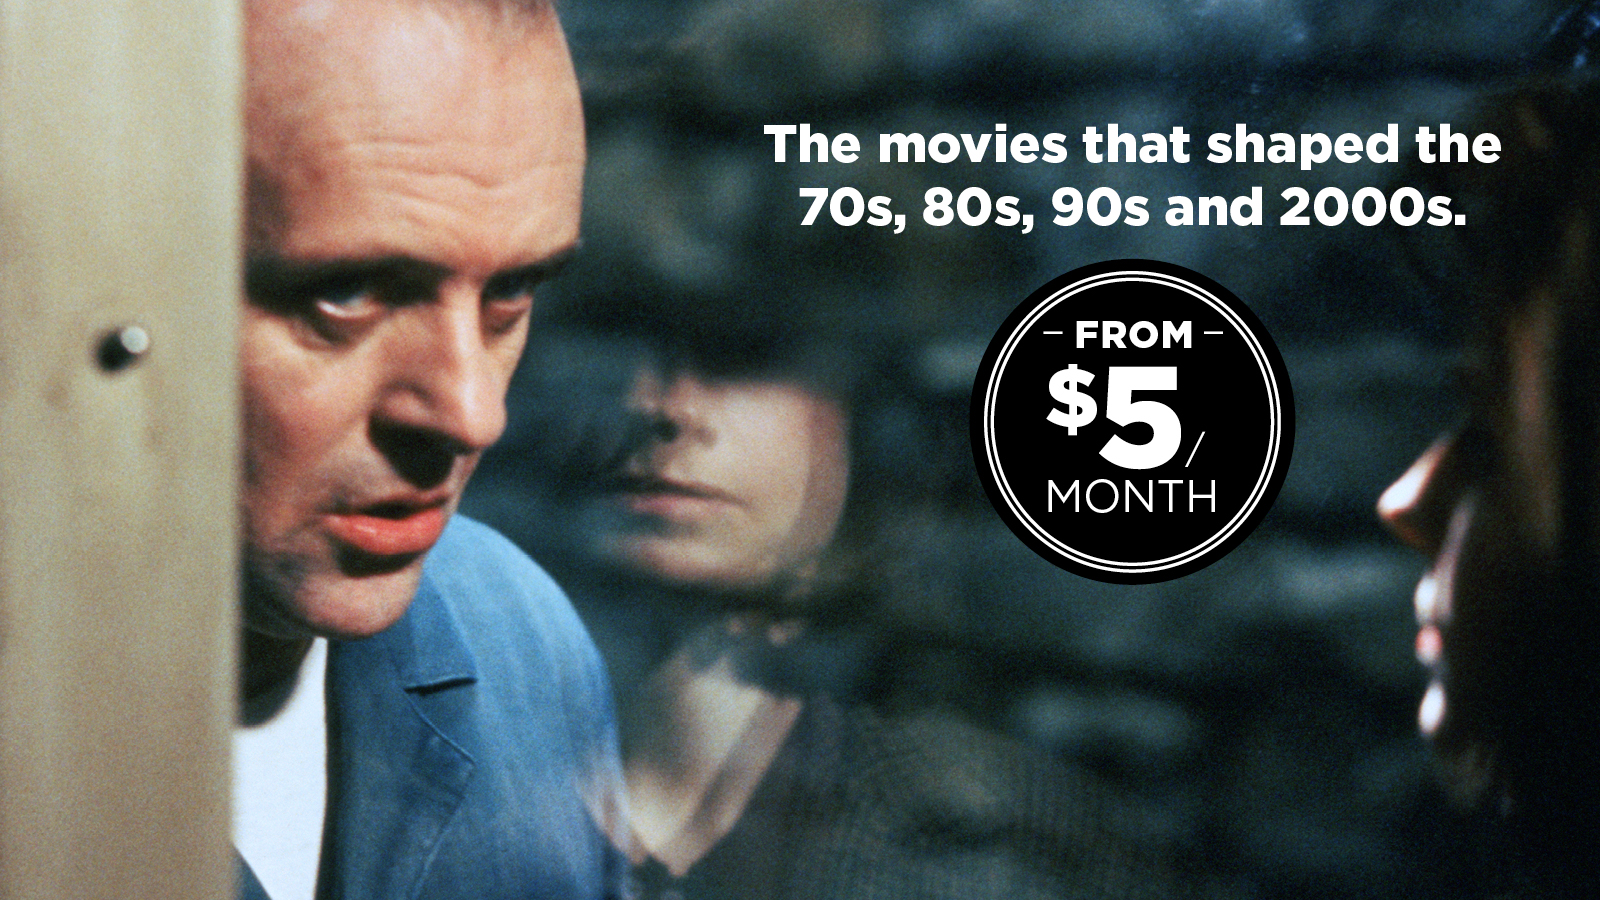 The Movies that Shaped the 70s, 80s, 90s and 2000s. From $5 a month.